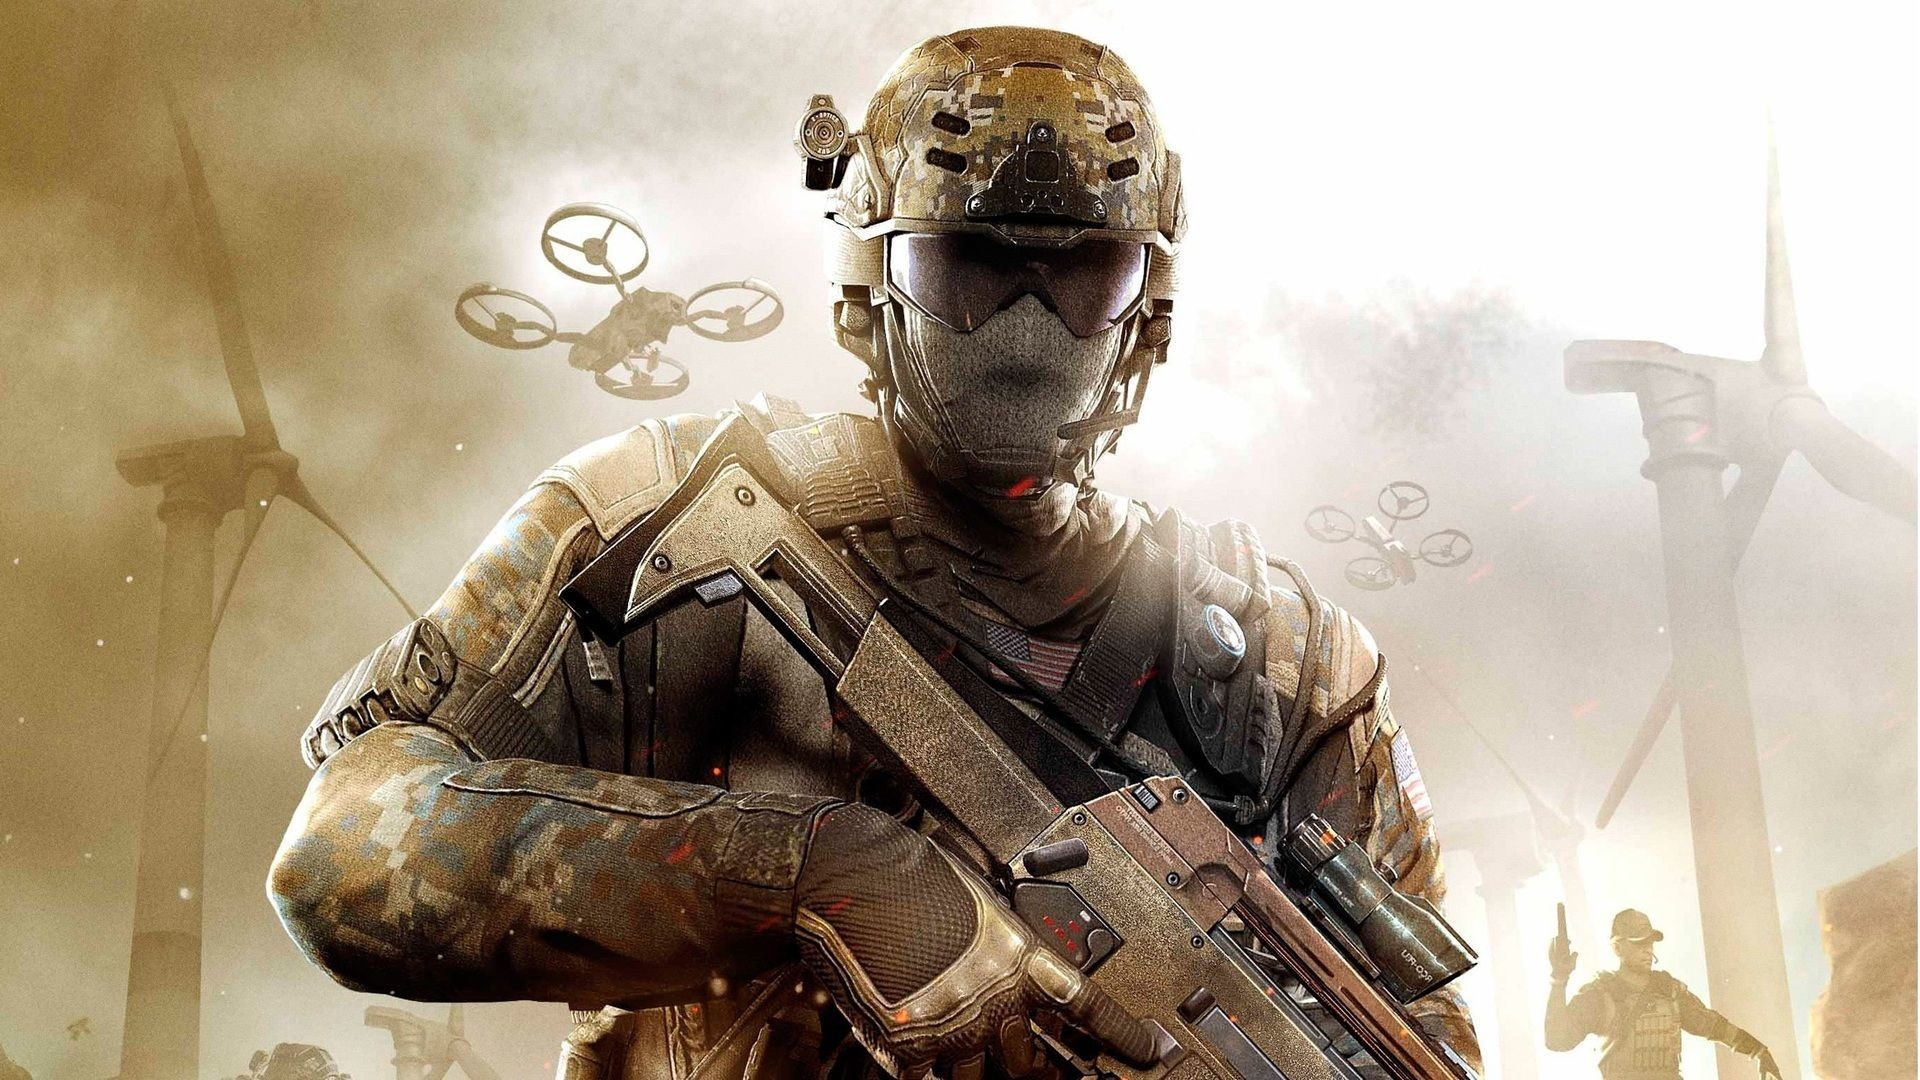 Res: 1920x1080, call of duty black ops cool hd wallpaper